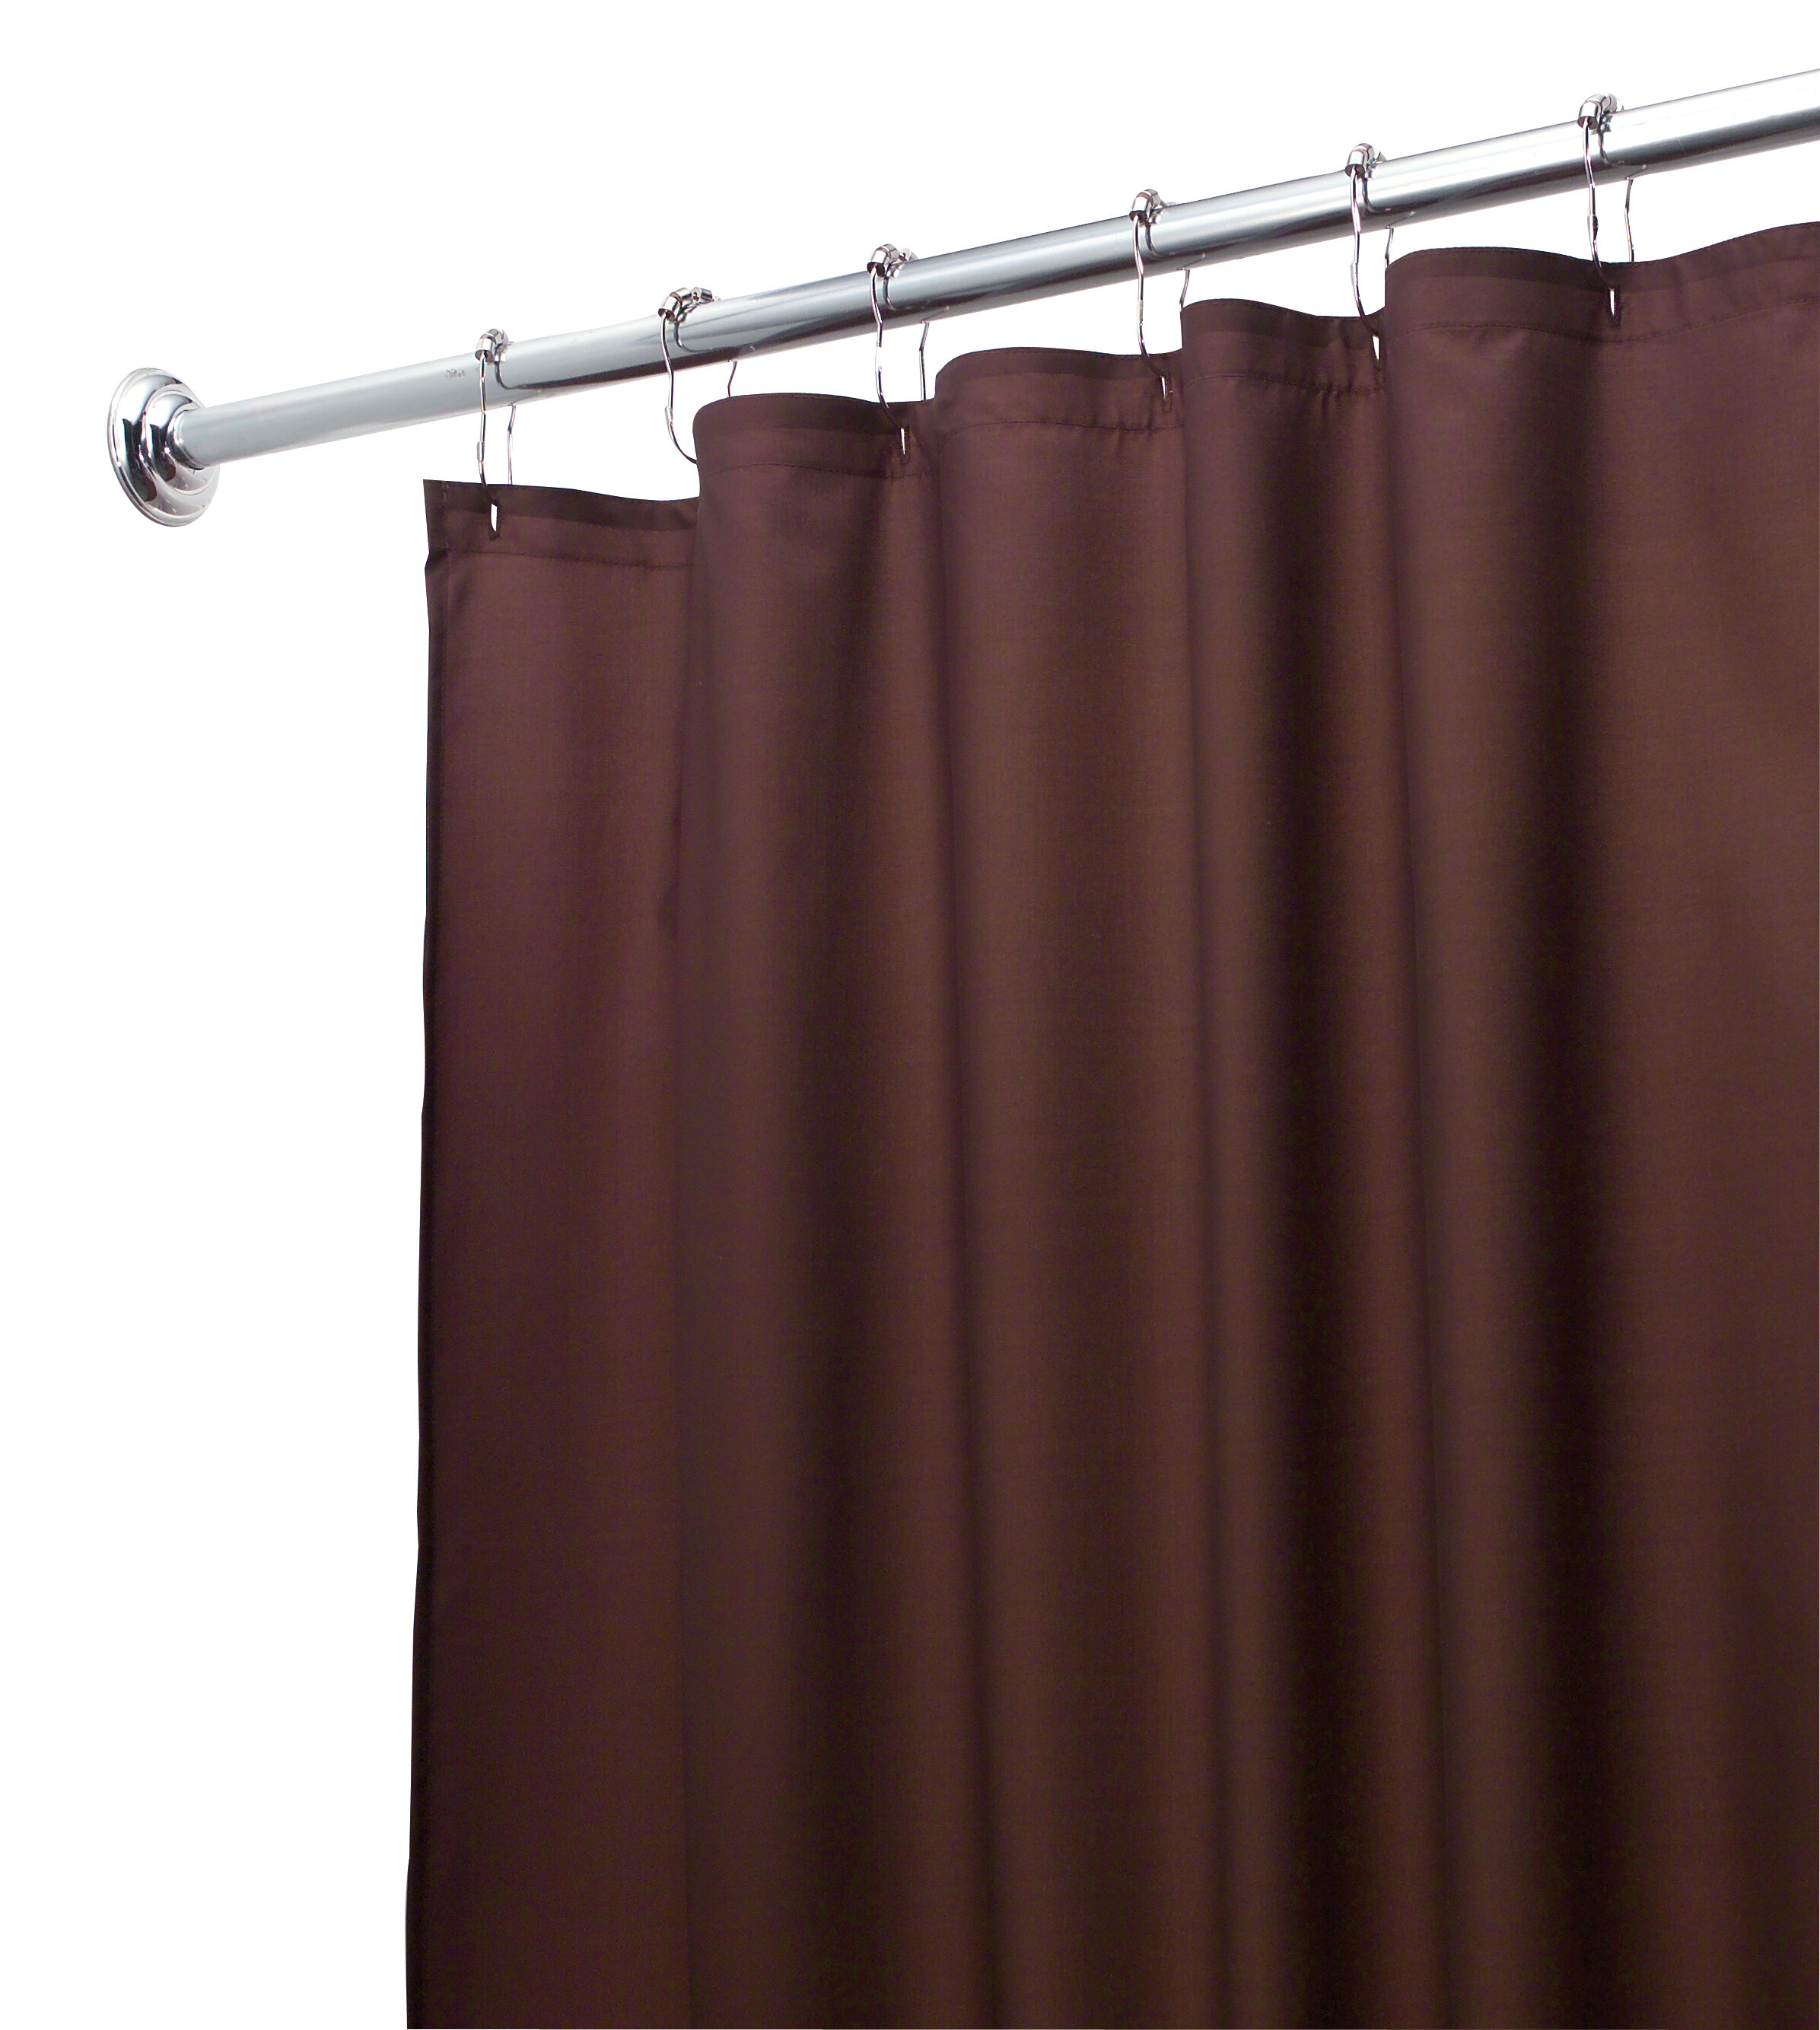 Waterproof Single Shower Curtain Liner Reviews